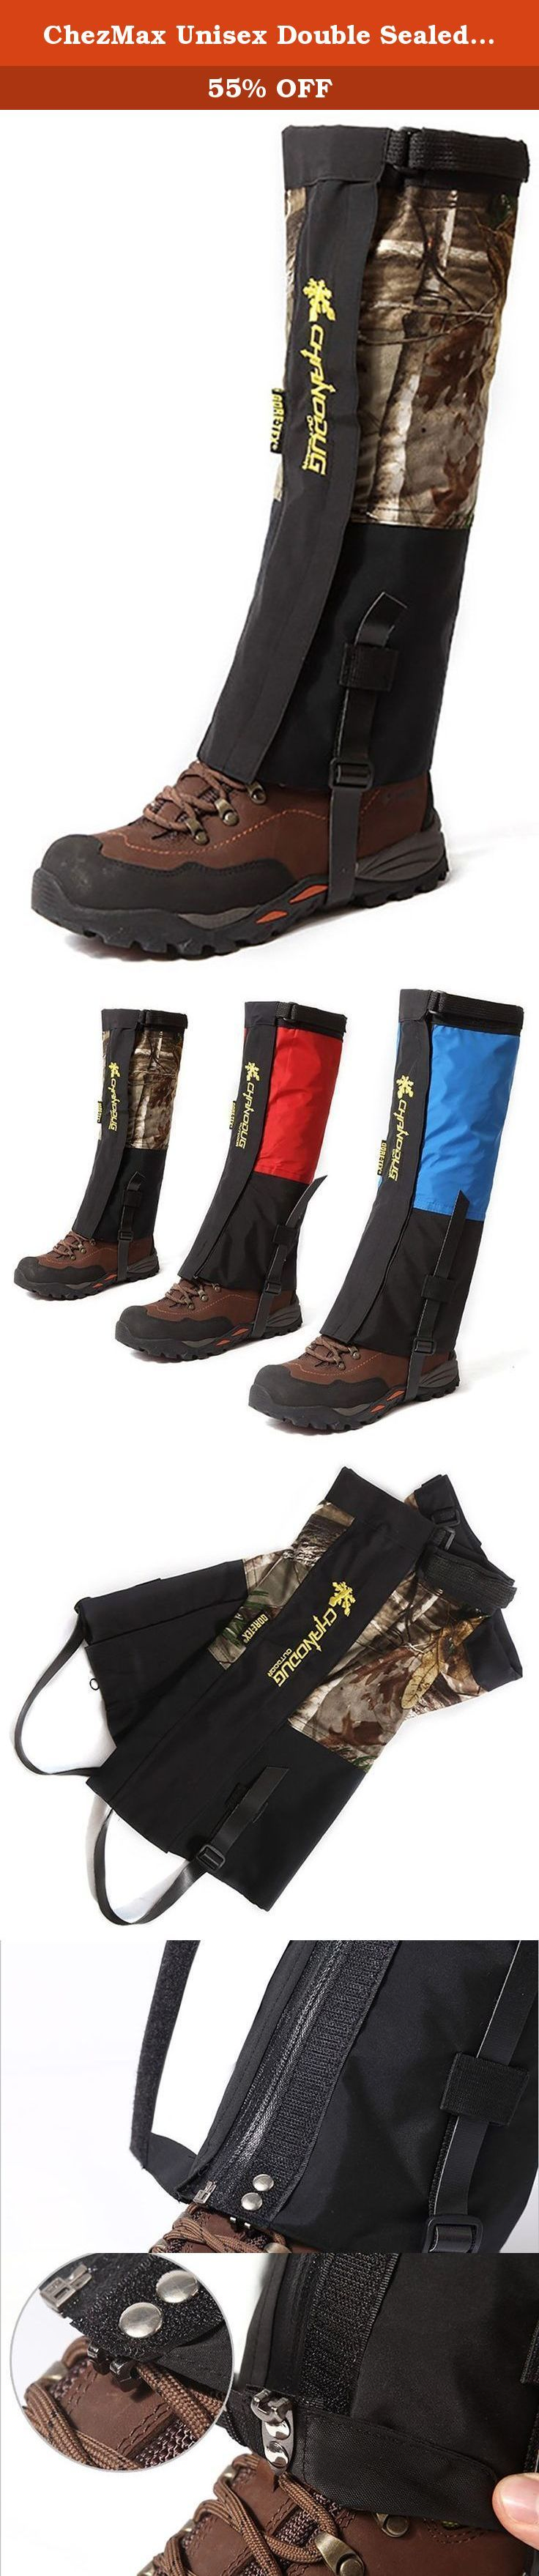 ChezMax Unisex Double Sealed Velcro Zippered Closure TPU Strap Waterproof Leg Gaiters Leggings Wrap for Skiing Snowboarding Hiking Climbing Camouflage. To see more similar products, please click the brand name ChezMax Outdoor or browse in our store ERainbow . The double sealed velcro zippered closure TPU strap ChezMax leg gaiters leggings cover is perfect for outdoor activities like snowboarding, climbing, hiking and skiing. The 400D Nylon Cloth leg gaiters leggings cover is windproof and...